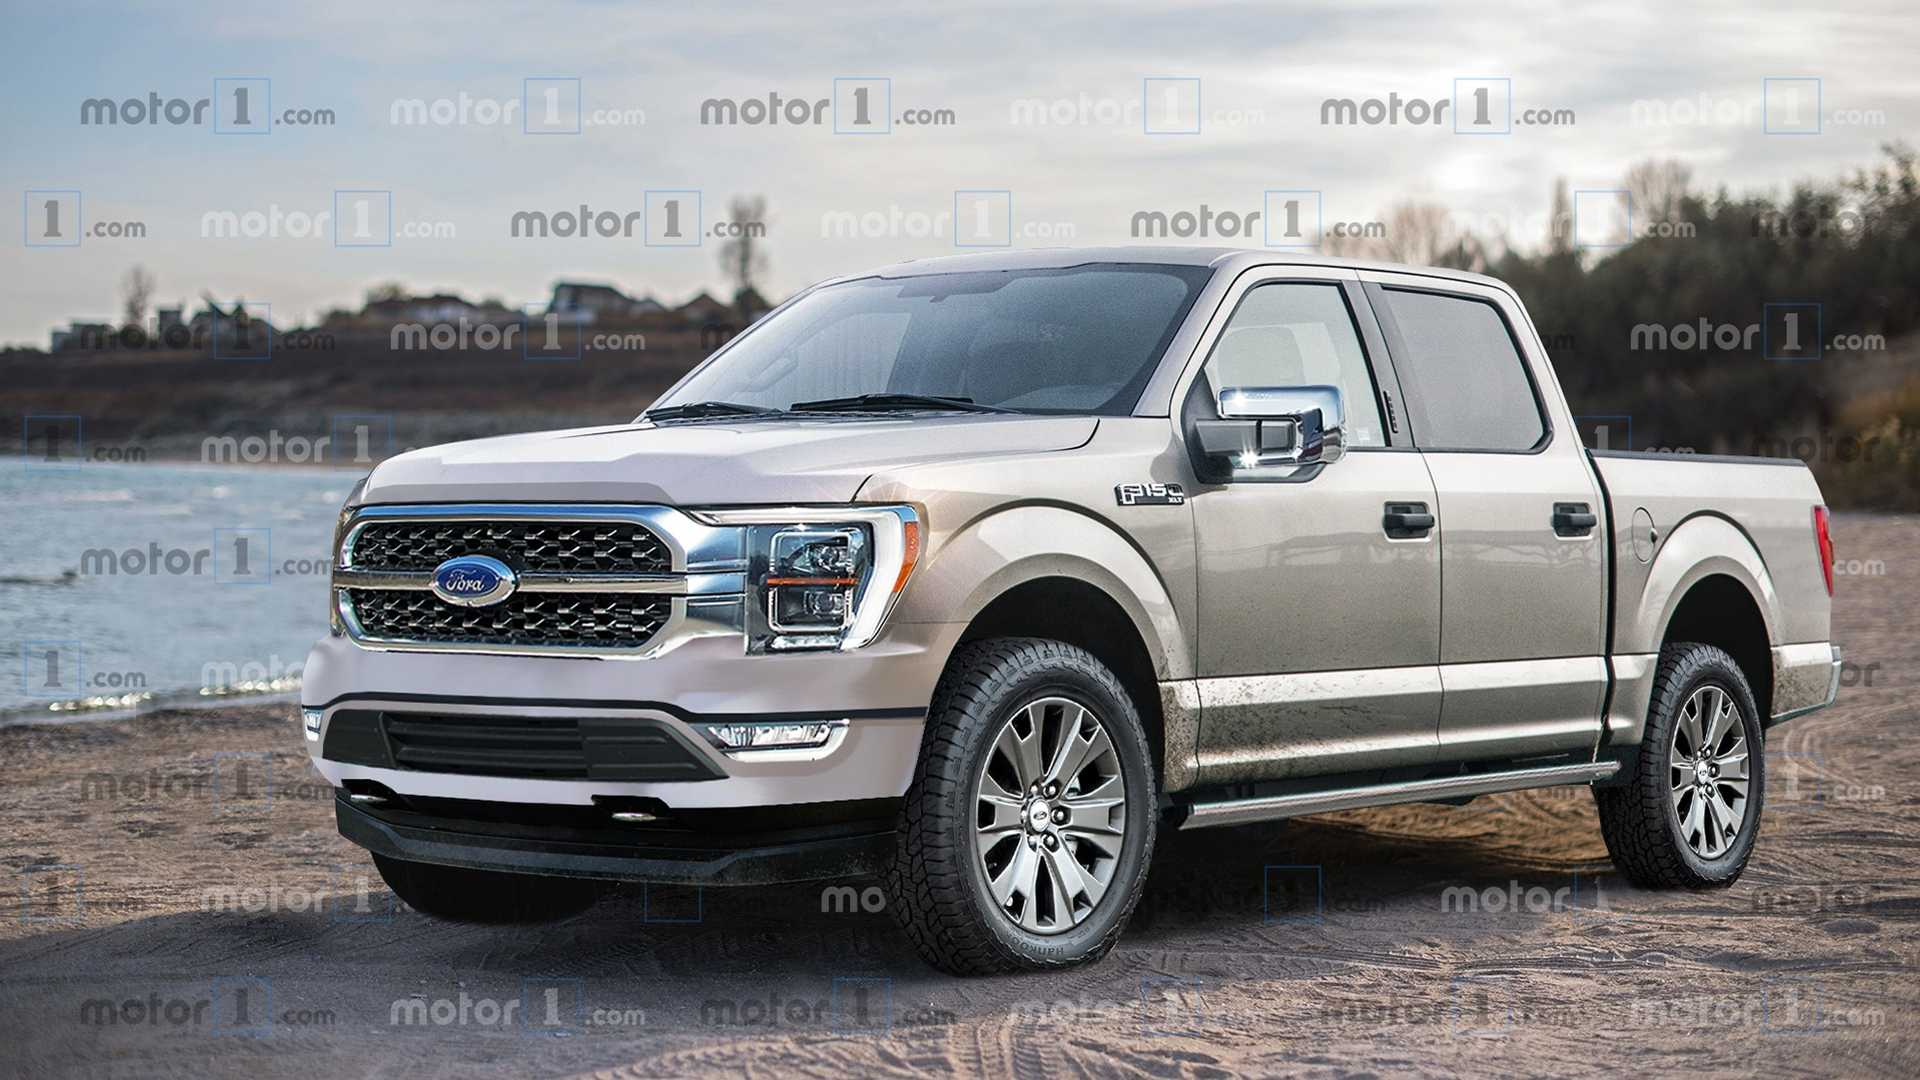 2021 Ford F-150 Supercrew Colors, Release Date, Redesign ...